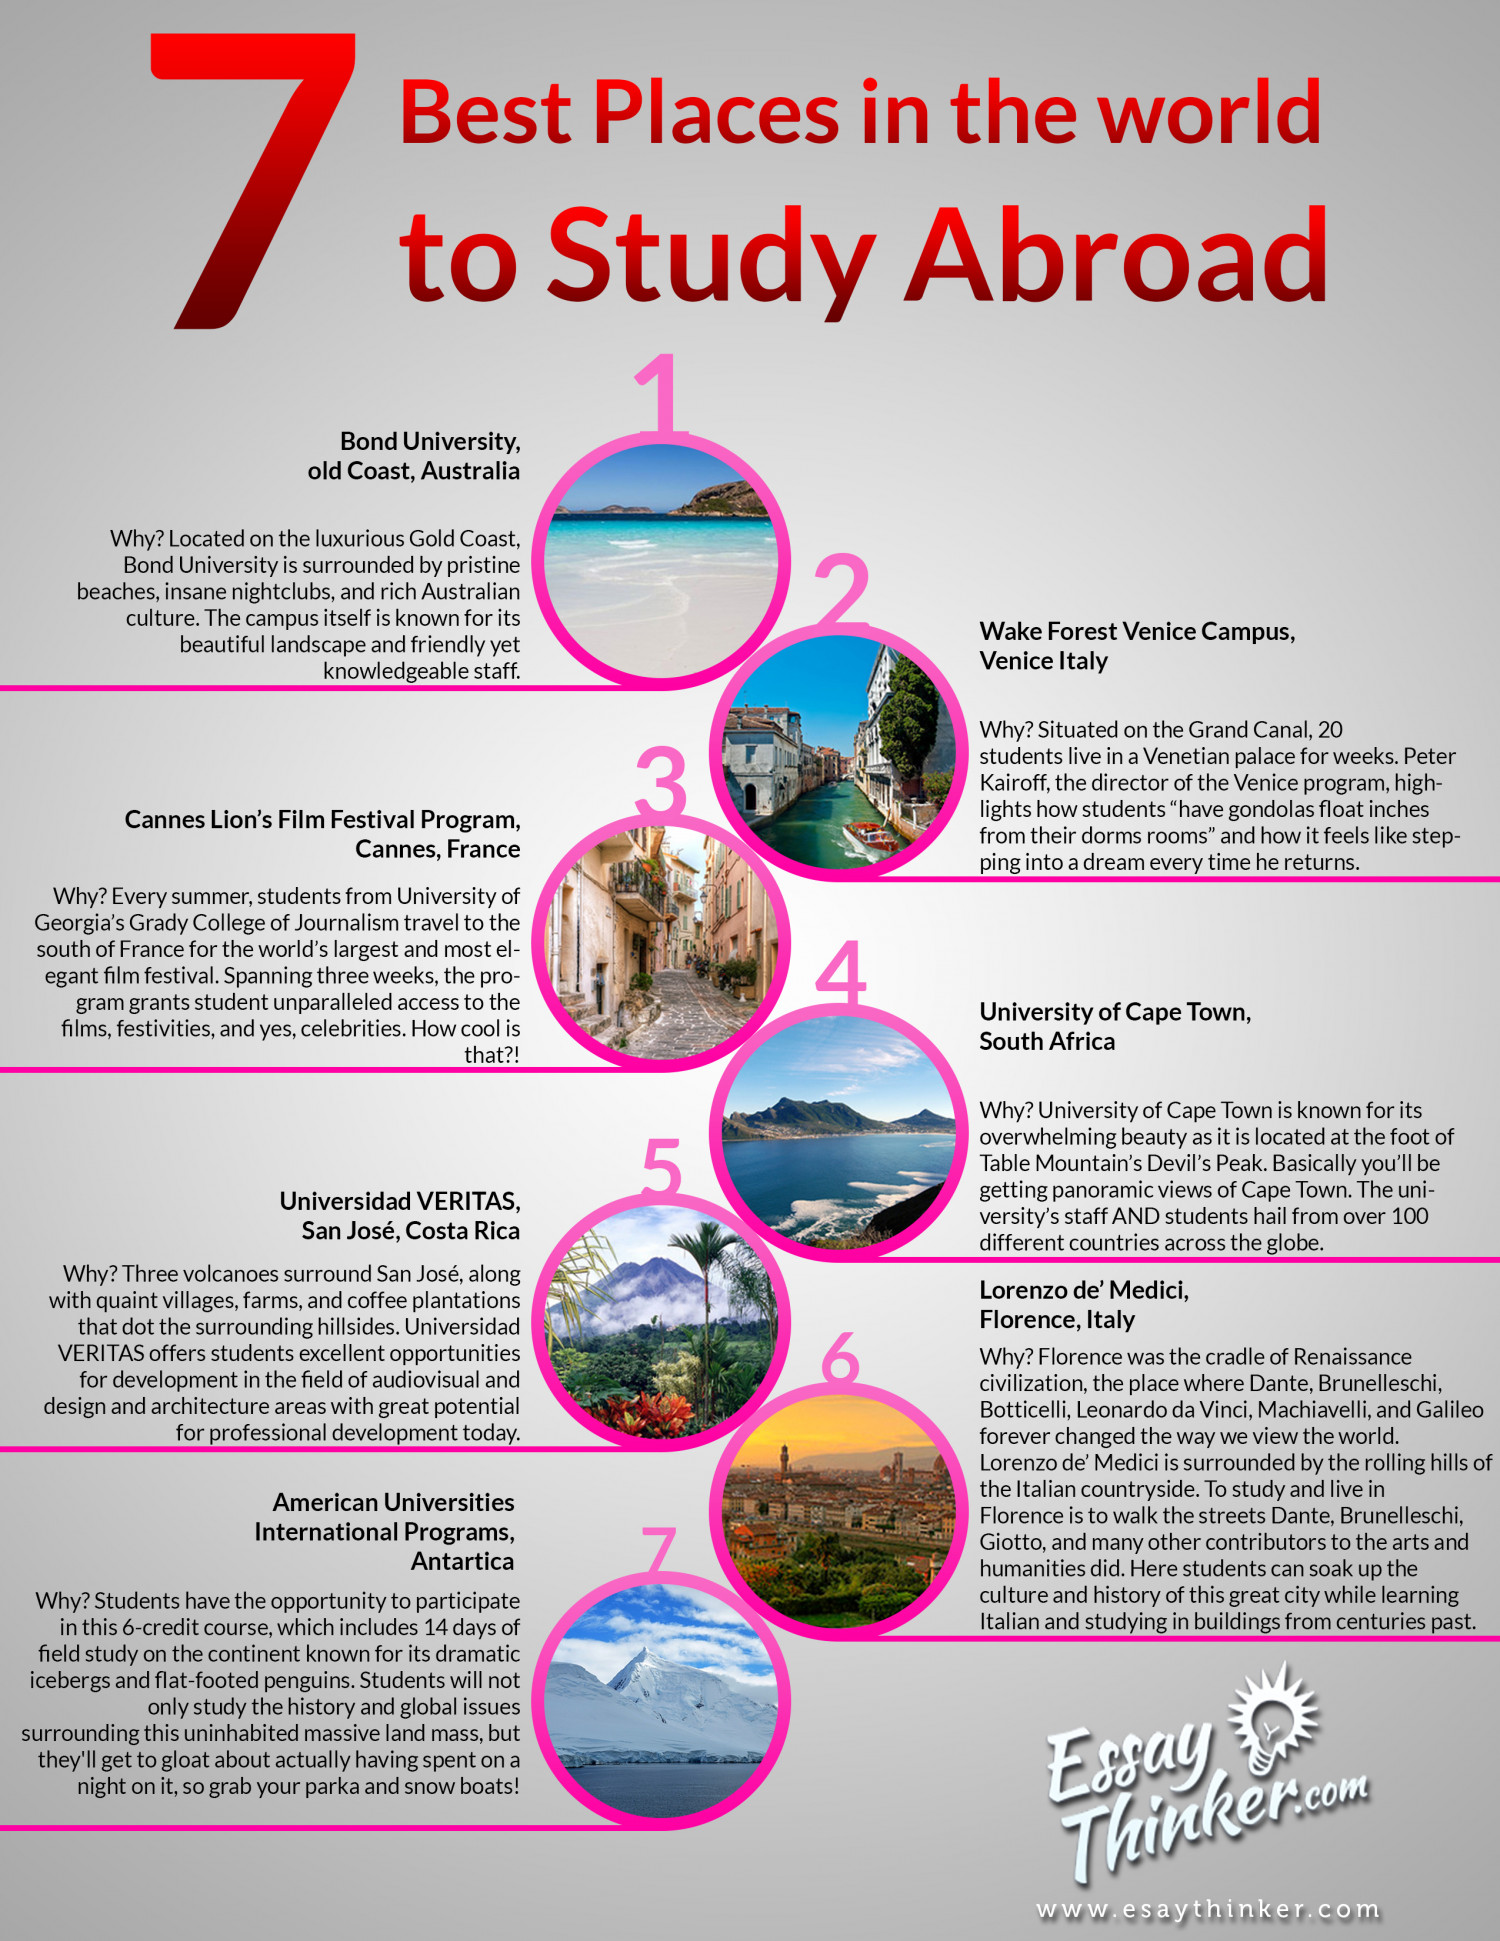 best places to study abroad for creative writing admission essay 3 ways to raise money for study abroad programs